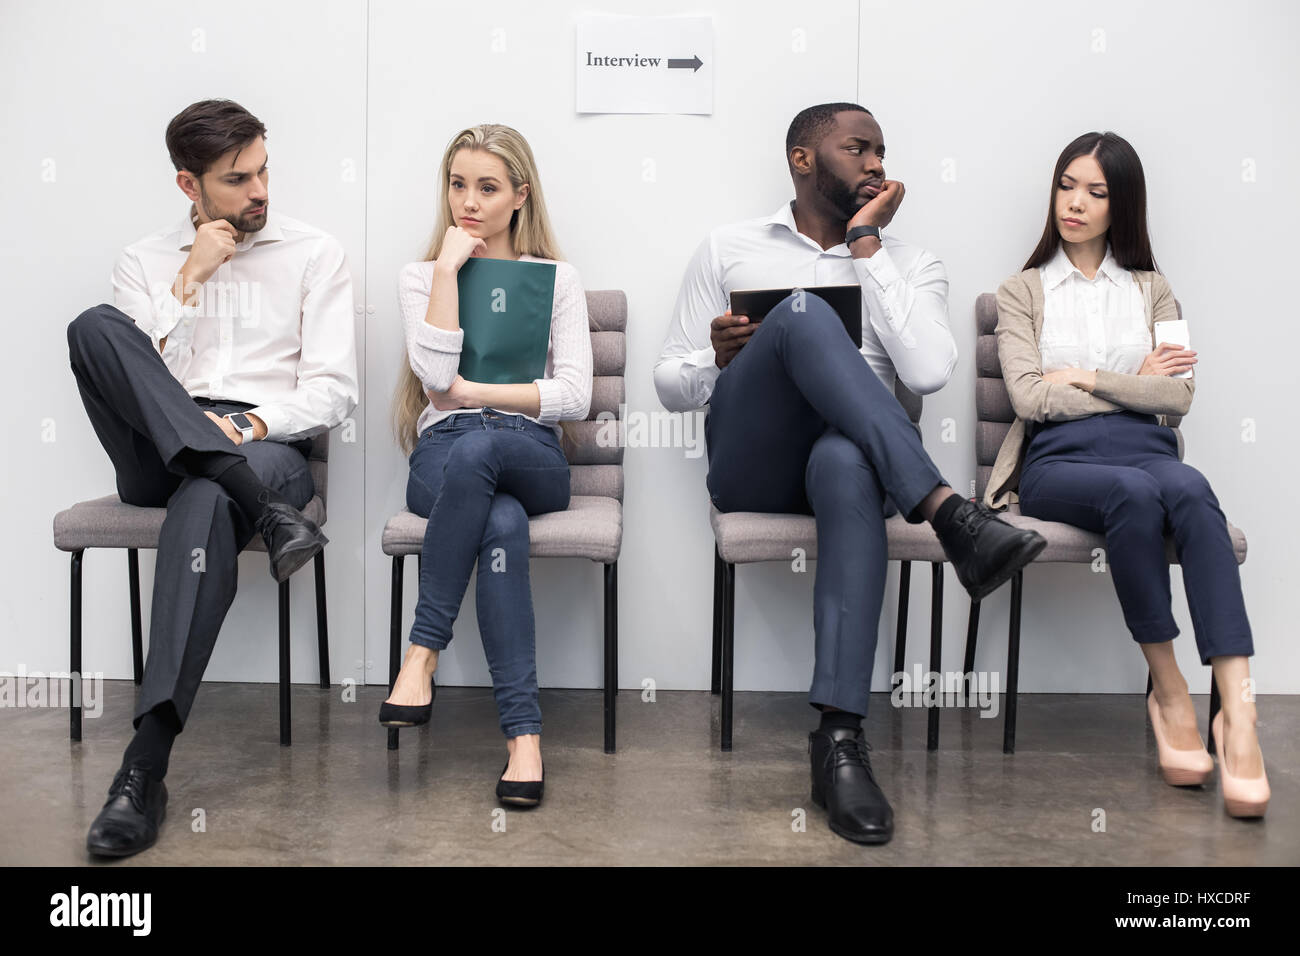 People Waiting for Job Interview Concept - Stock Image